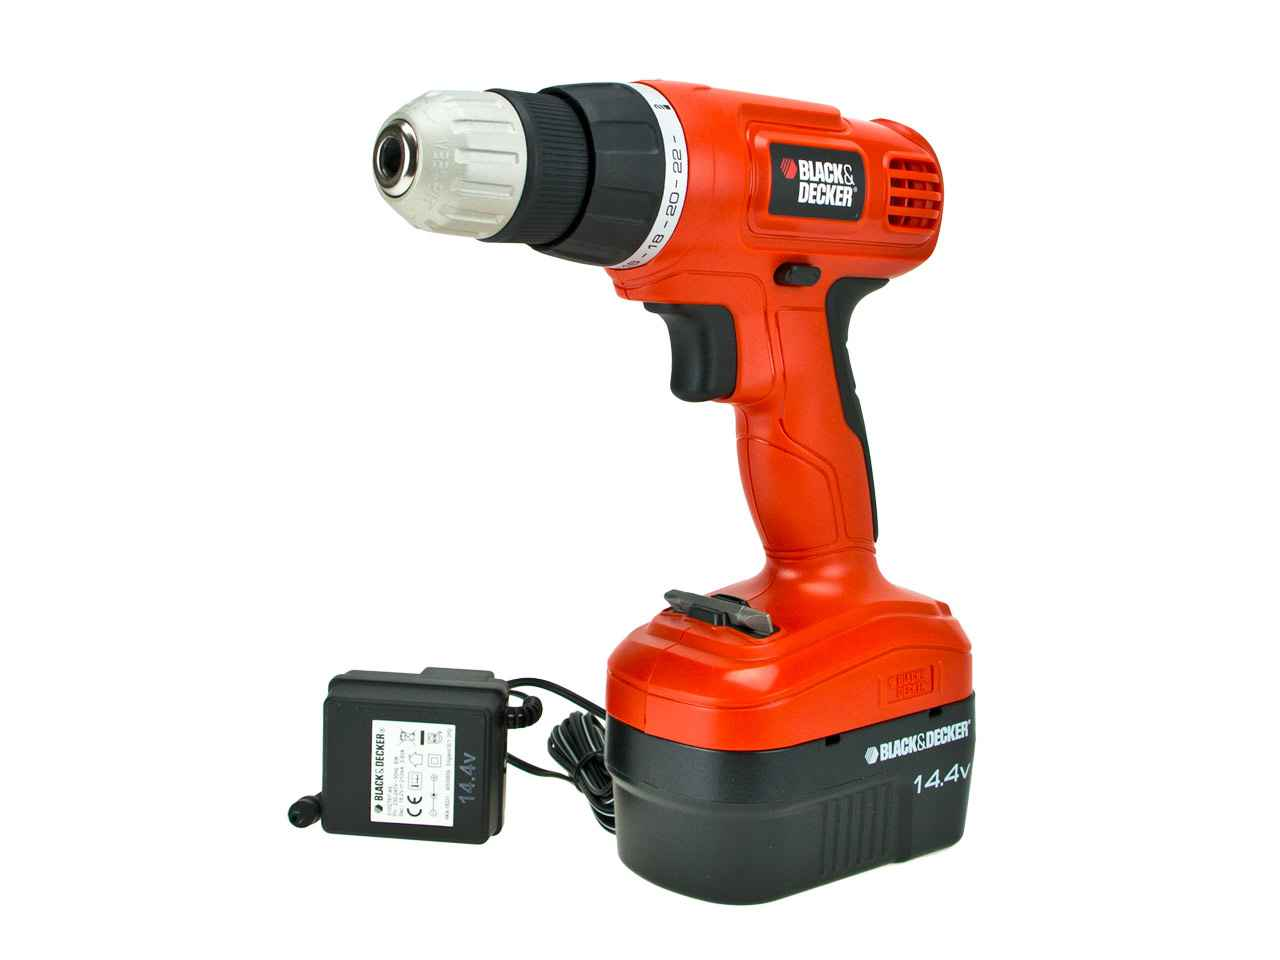 black and decker epc14ca 1 0ah nicd cordless drill. Black Bedroom Furniture Sets. Home Design Ideas